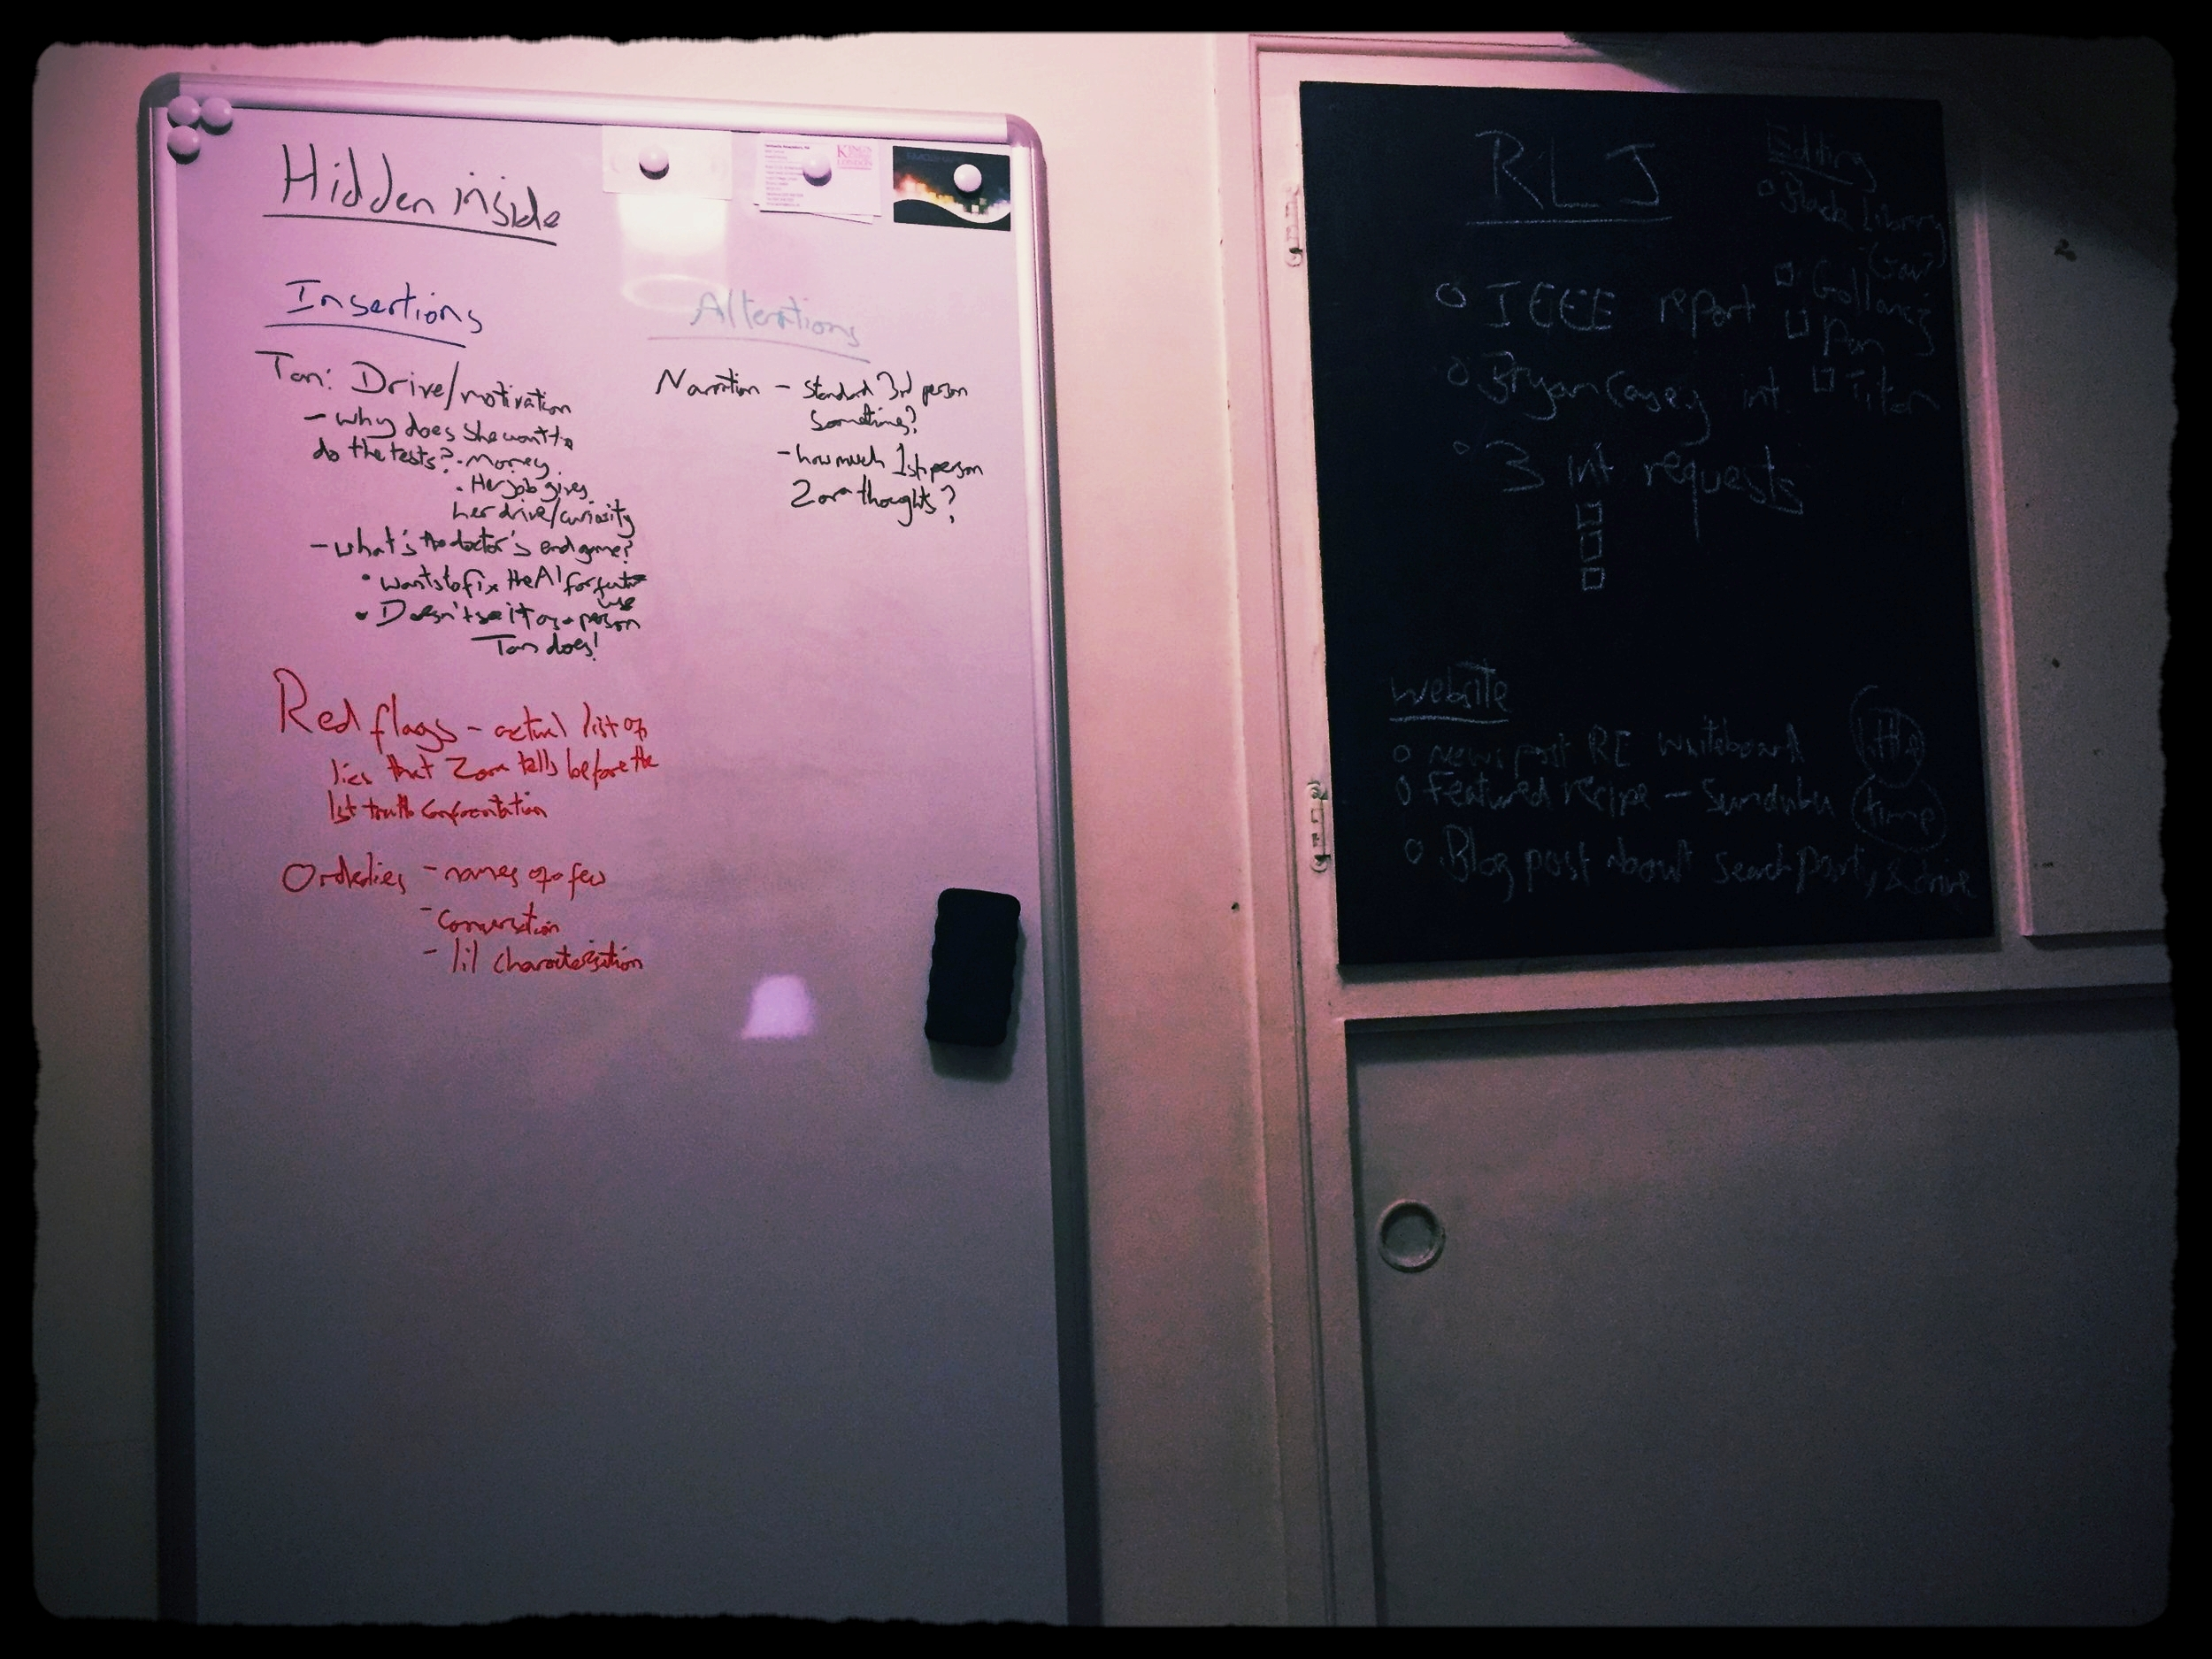 It is a whiteboard, despite the overly dramatic filter I've chosen.